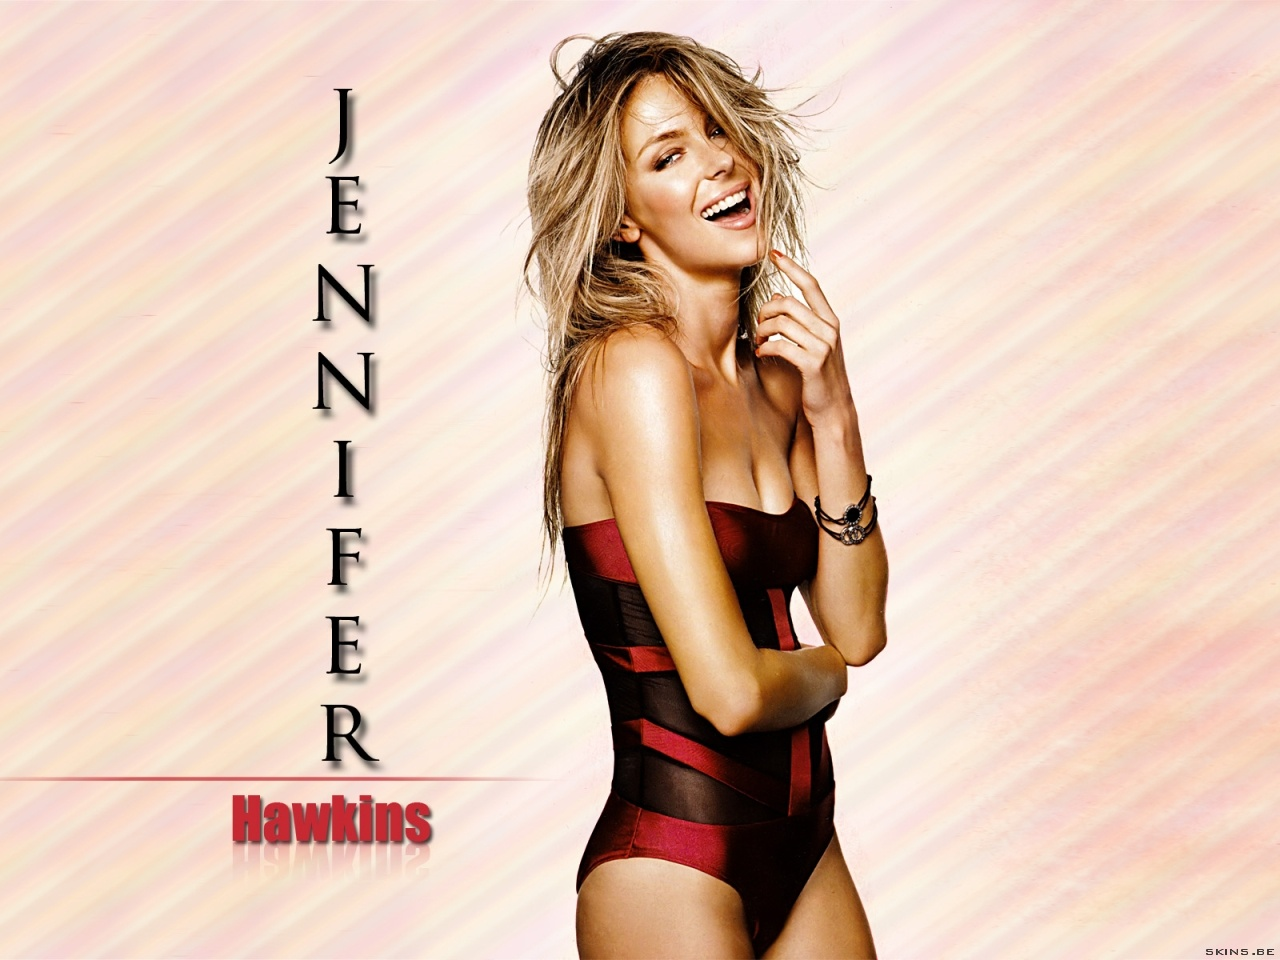 Jennifer Hawkins wallpaper (#40048)